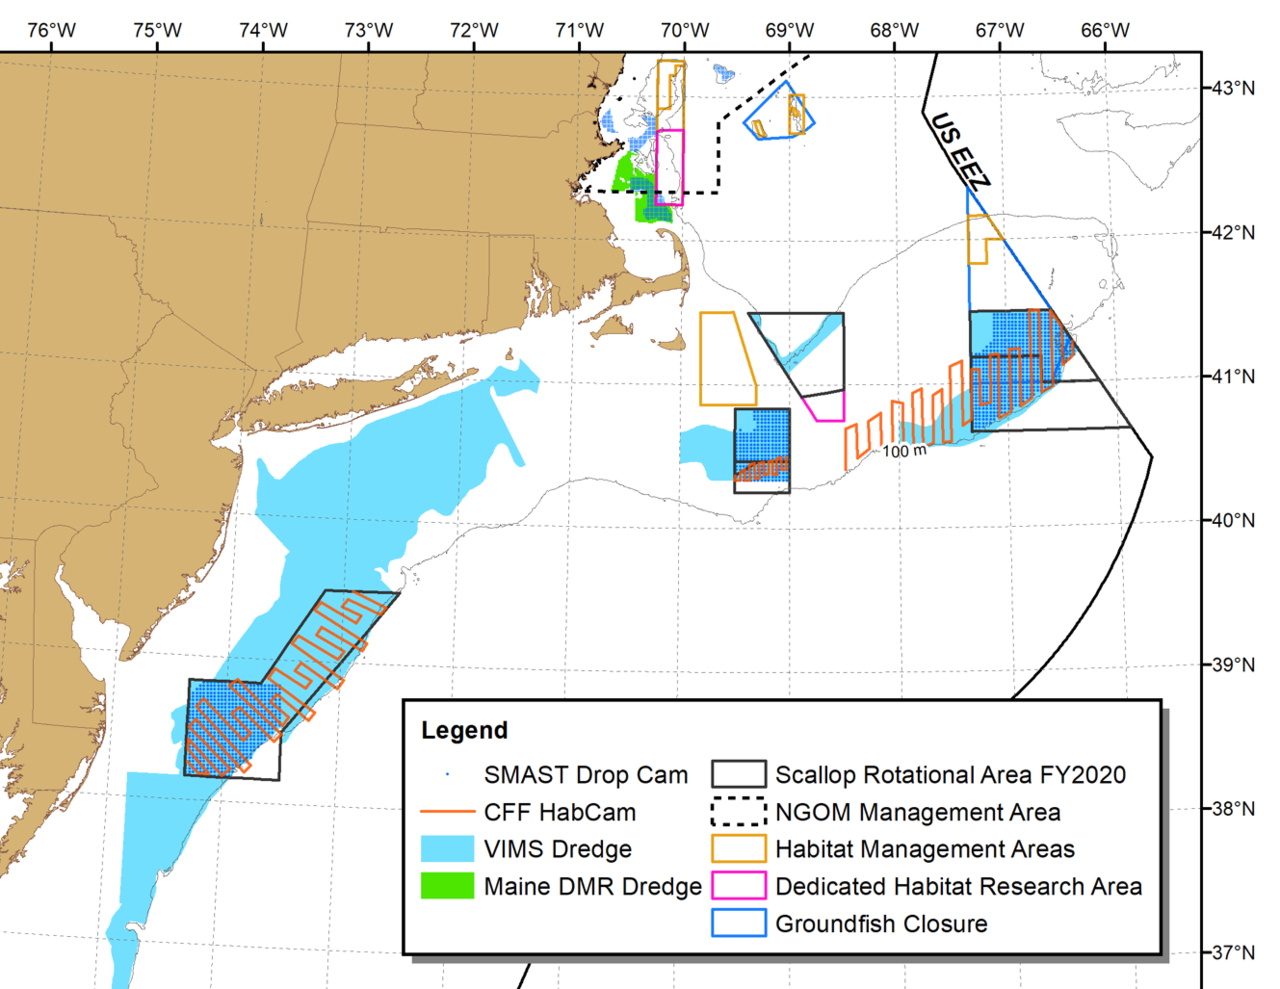 Chart showing the Northeastern coast of the U.S. and the areas of the ocean off the coast where research set-aside projects will survey the ocean bottom for sea scallops